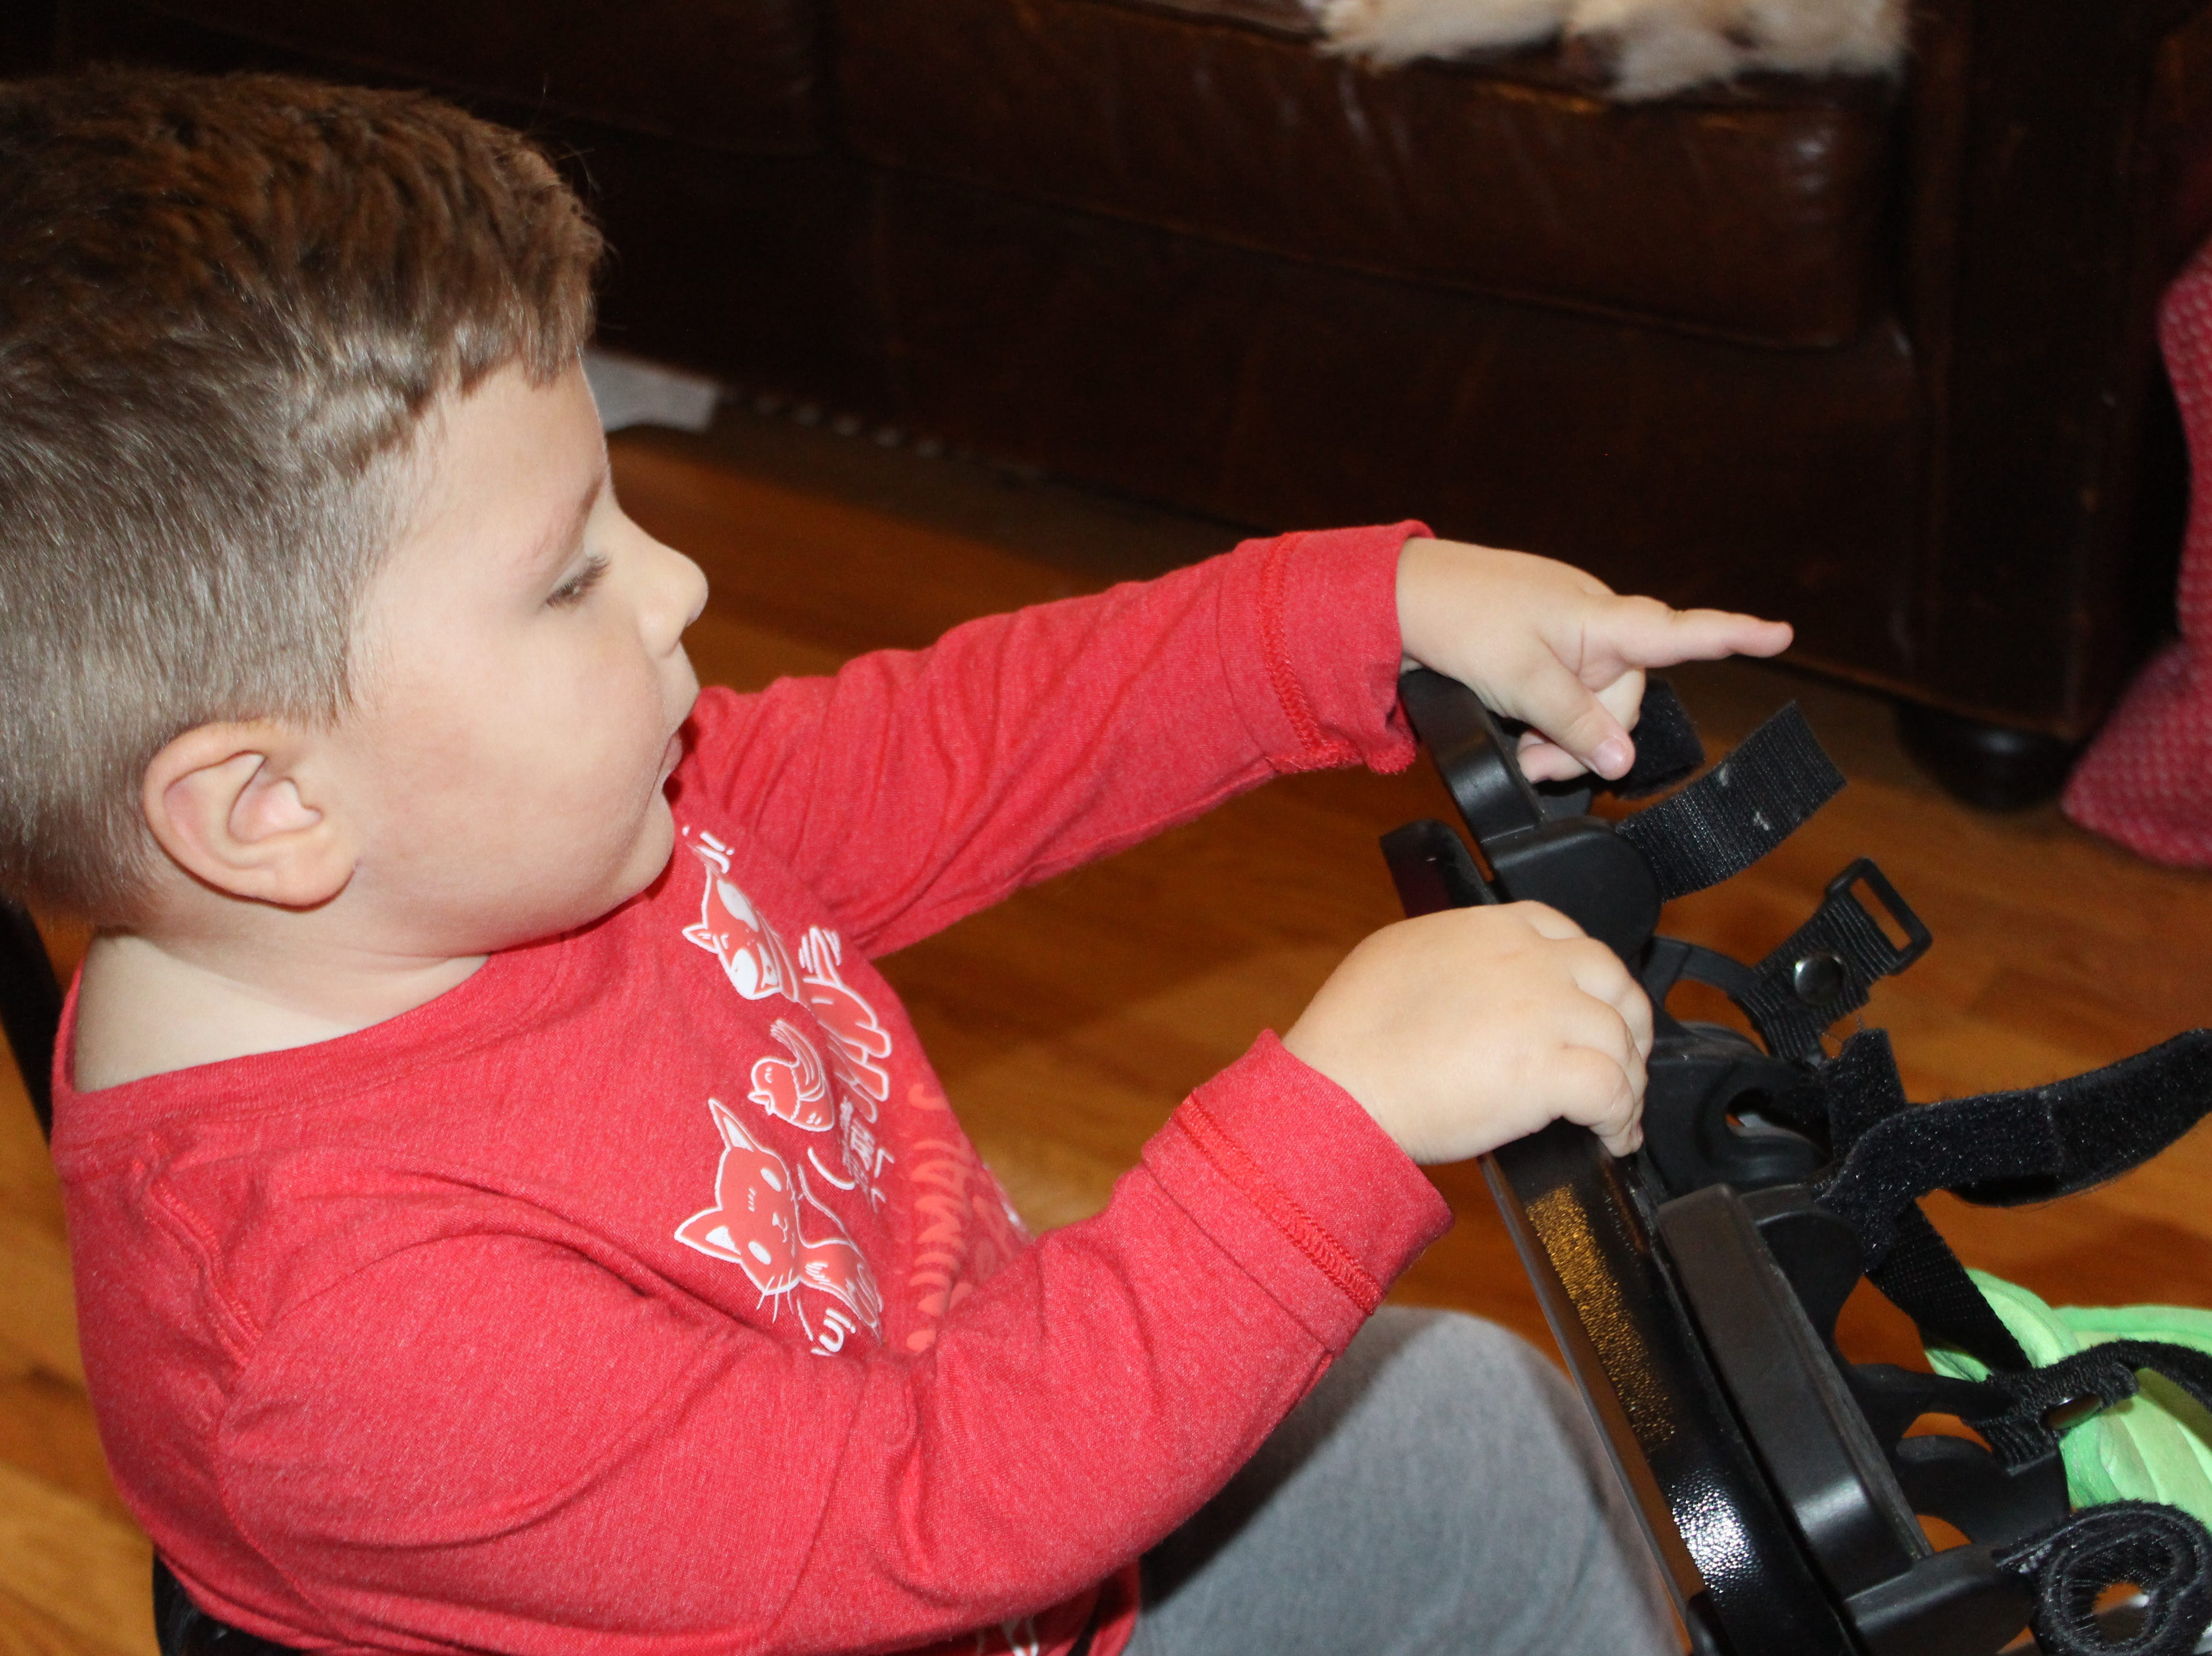 Oliver Schaper, who is receiving a first-of-its-kind treatment for spinal muscular atrophy, shows off a device that allows him to stand upright.